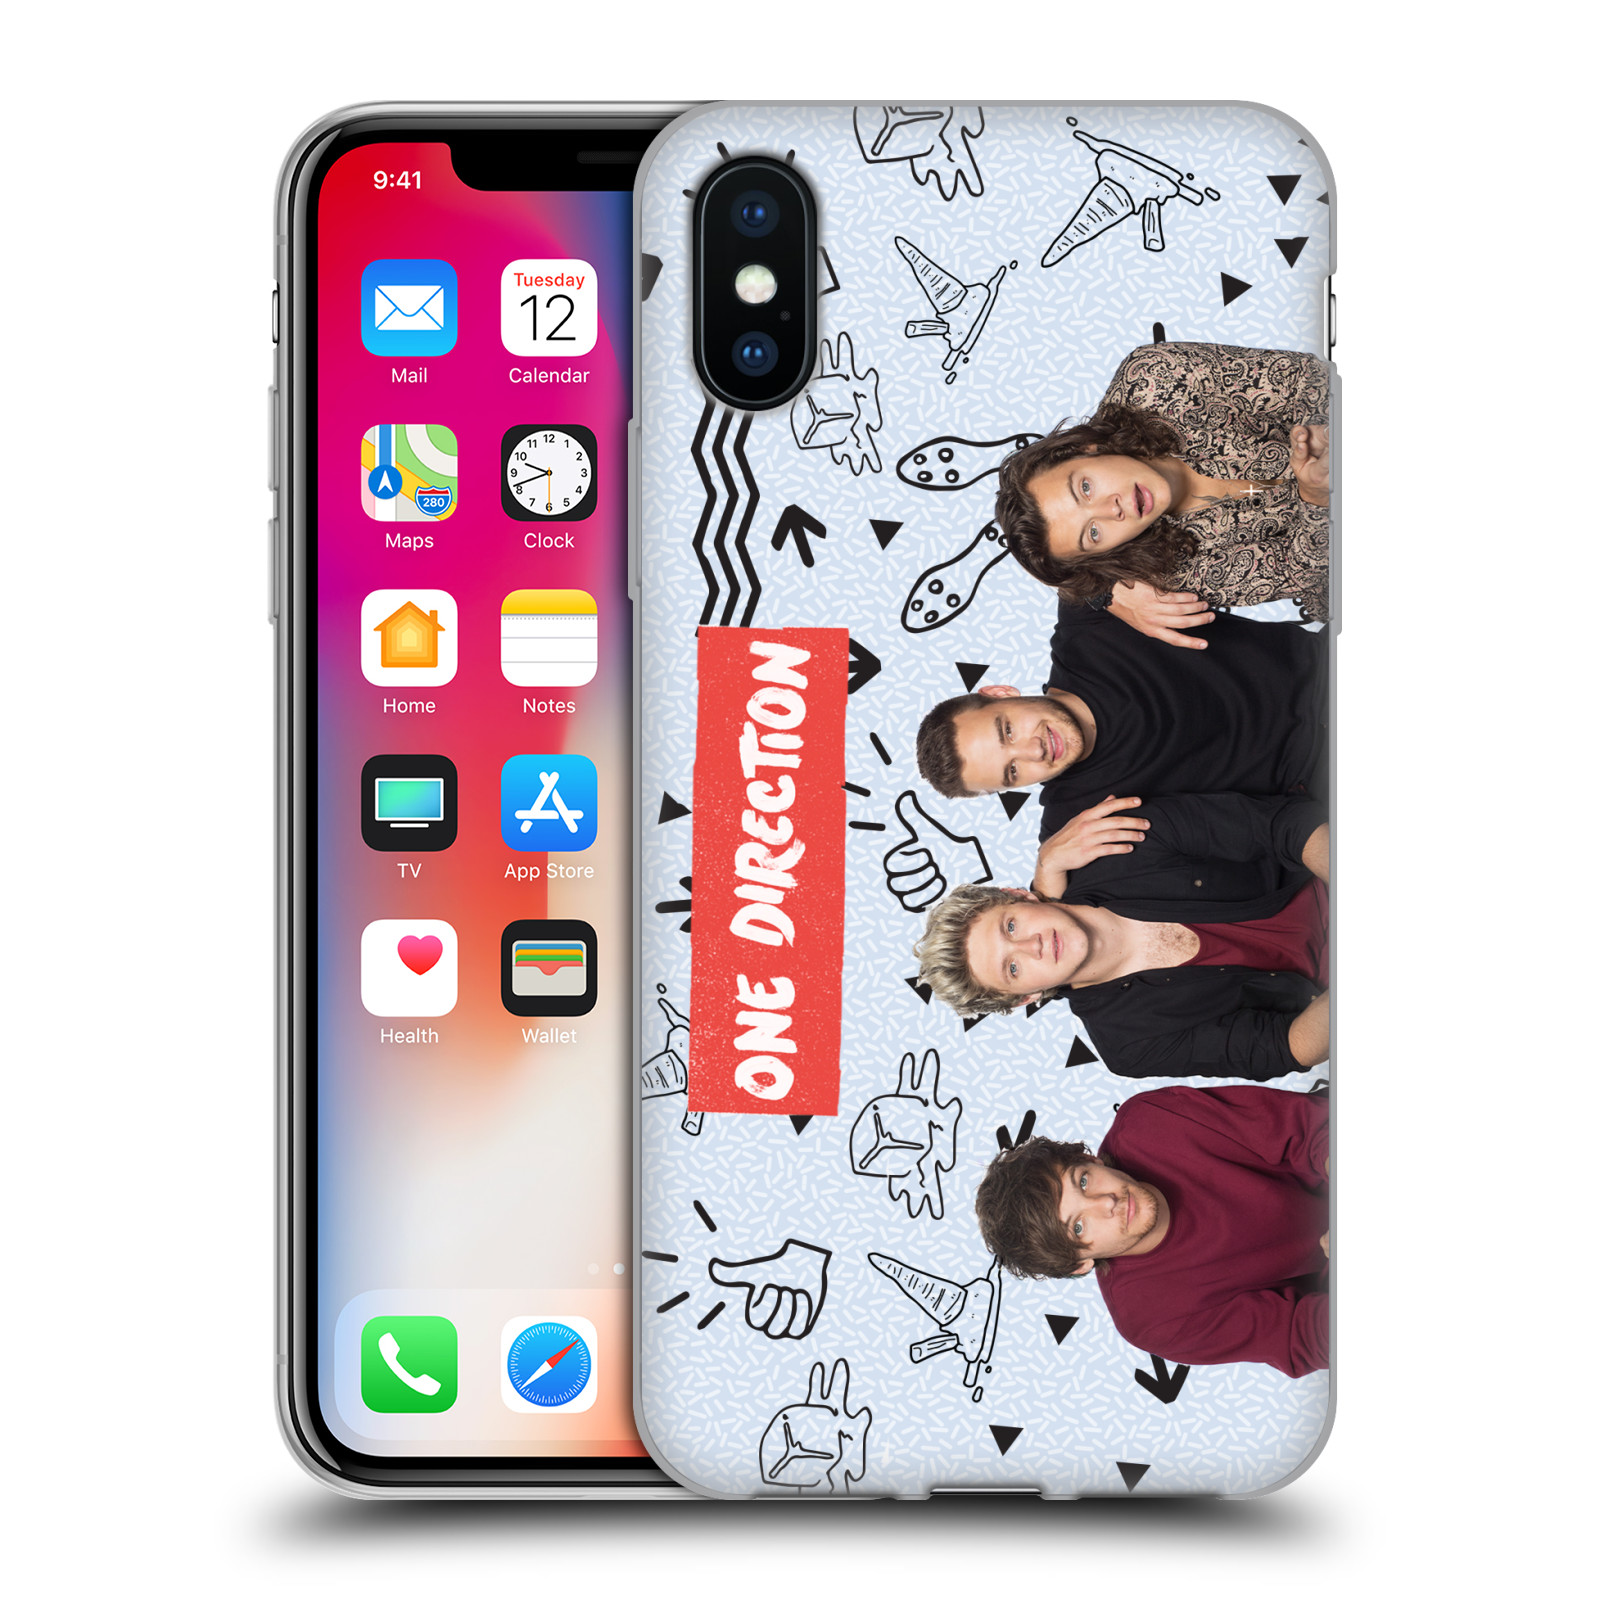 OFFICIAL-ONE-DIRECTION-GROUP-PHOTO-DOODLE-ICON-GEL-CASE-FOR-APPLE-iPHONE-PHONES